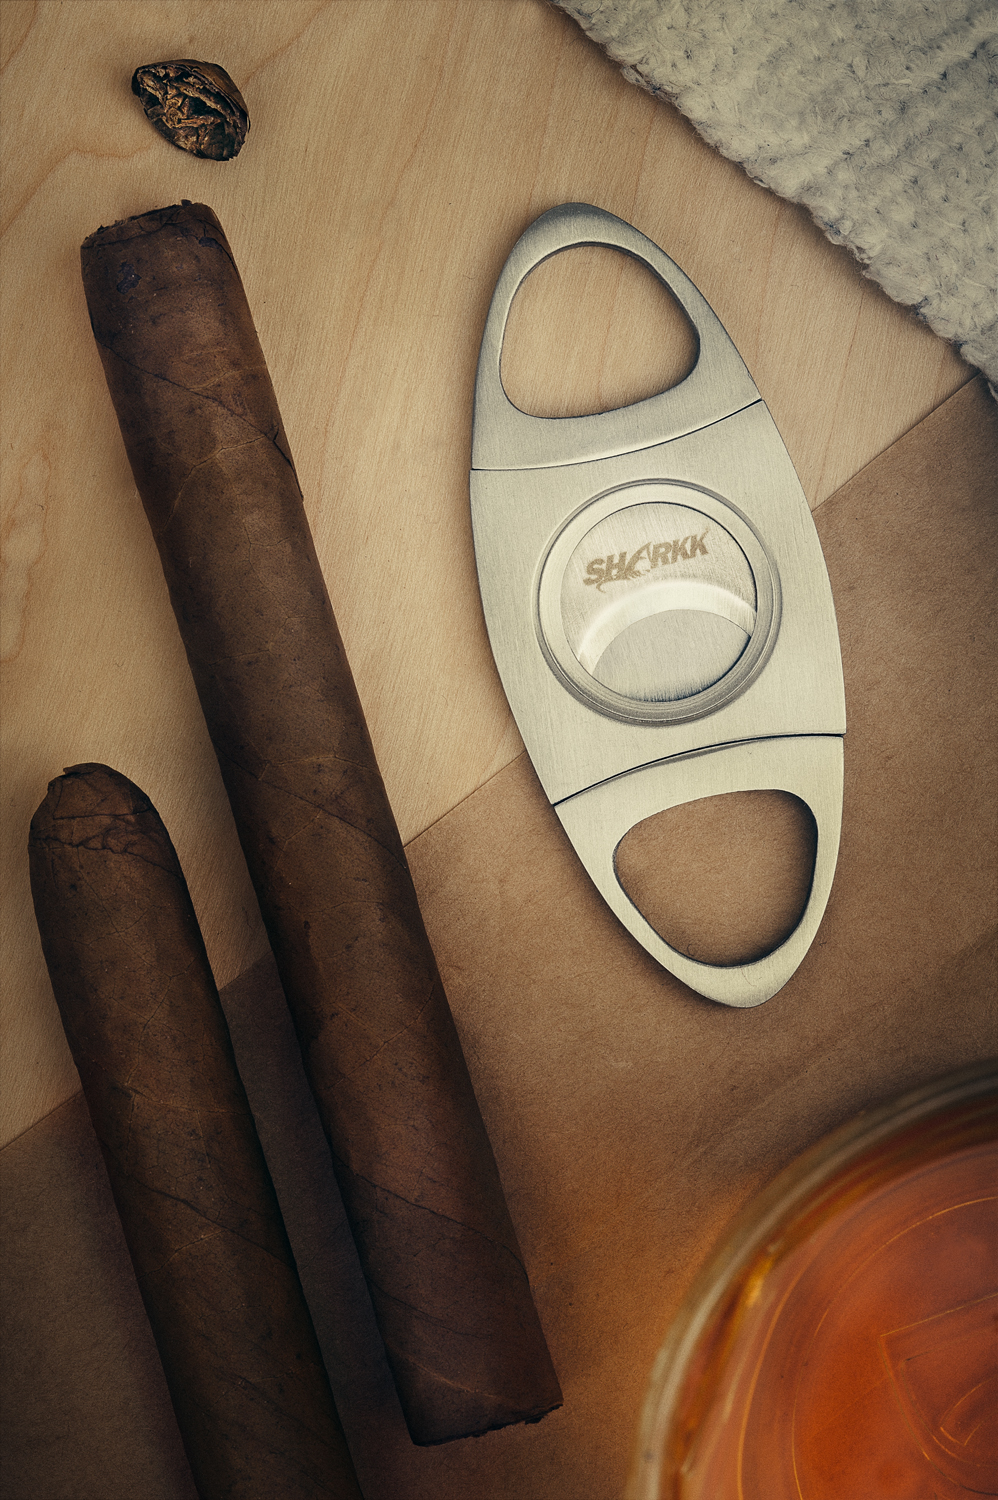 SHARKK-cigar-cutter.jpg